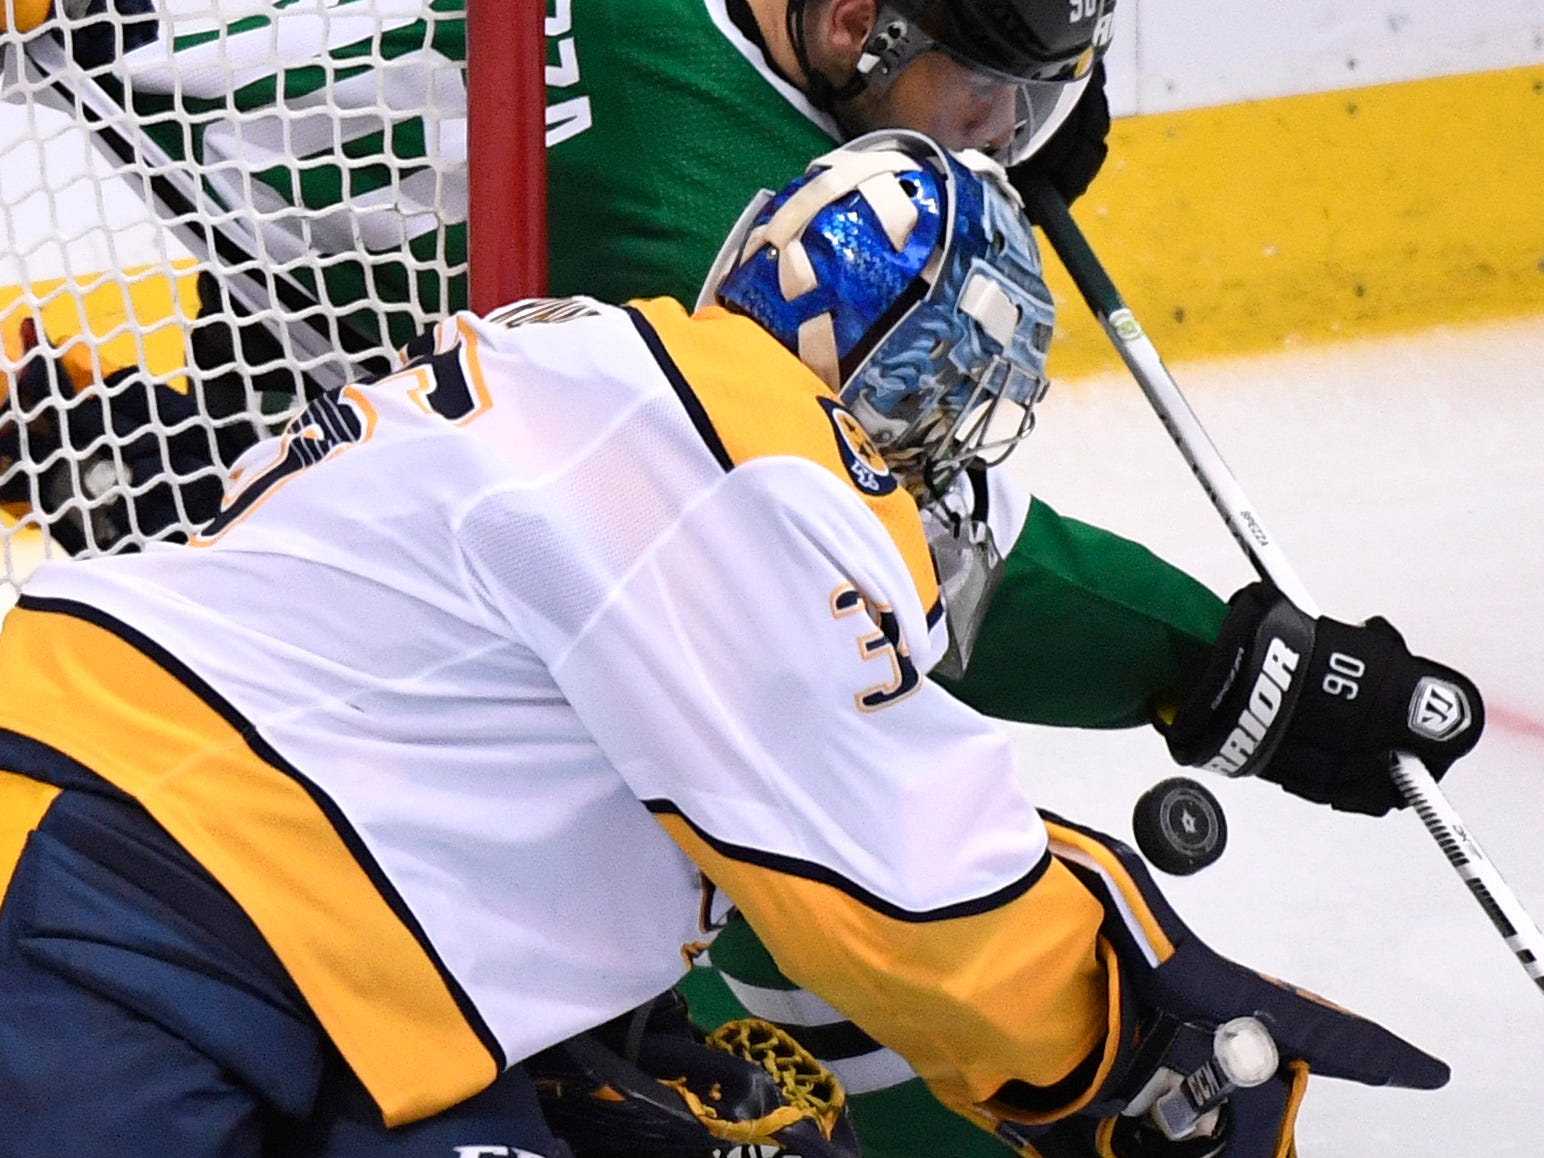 Nashville Predators goaltender Pekka Rinne (35) defends against Dallas Stars center Jason Spezza (90) during the third period of the divisional semifinal game at the American Airlines Center in Dallas, Texas, Monday, April 22, 2019.